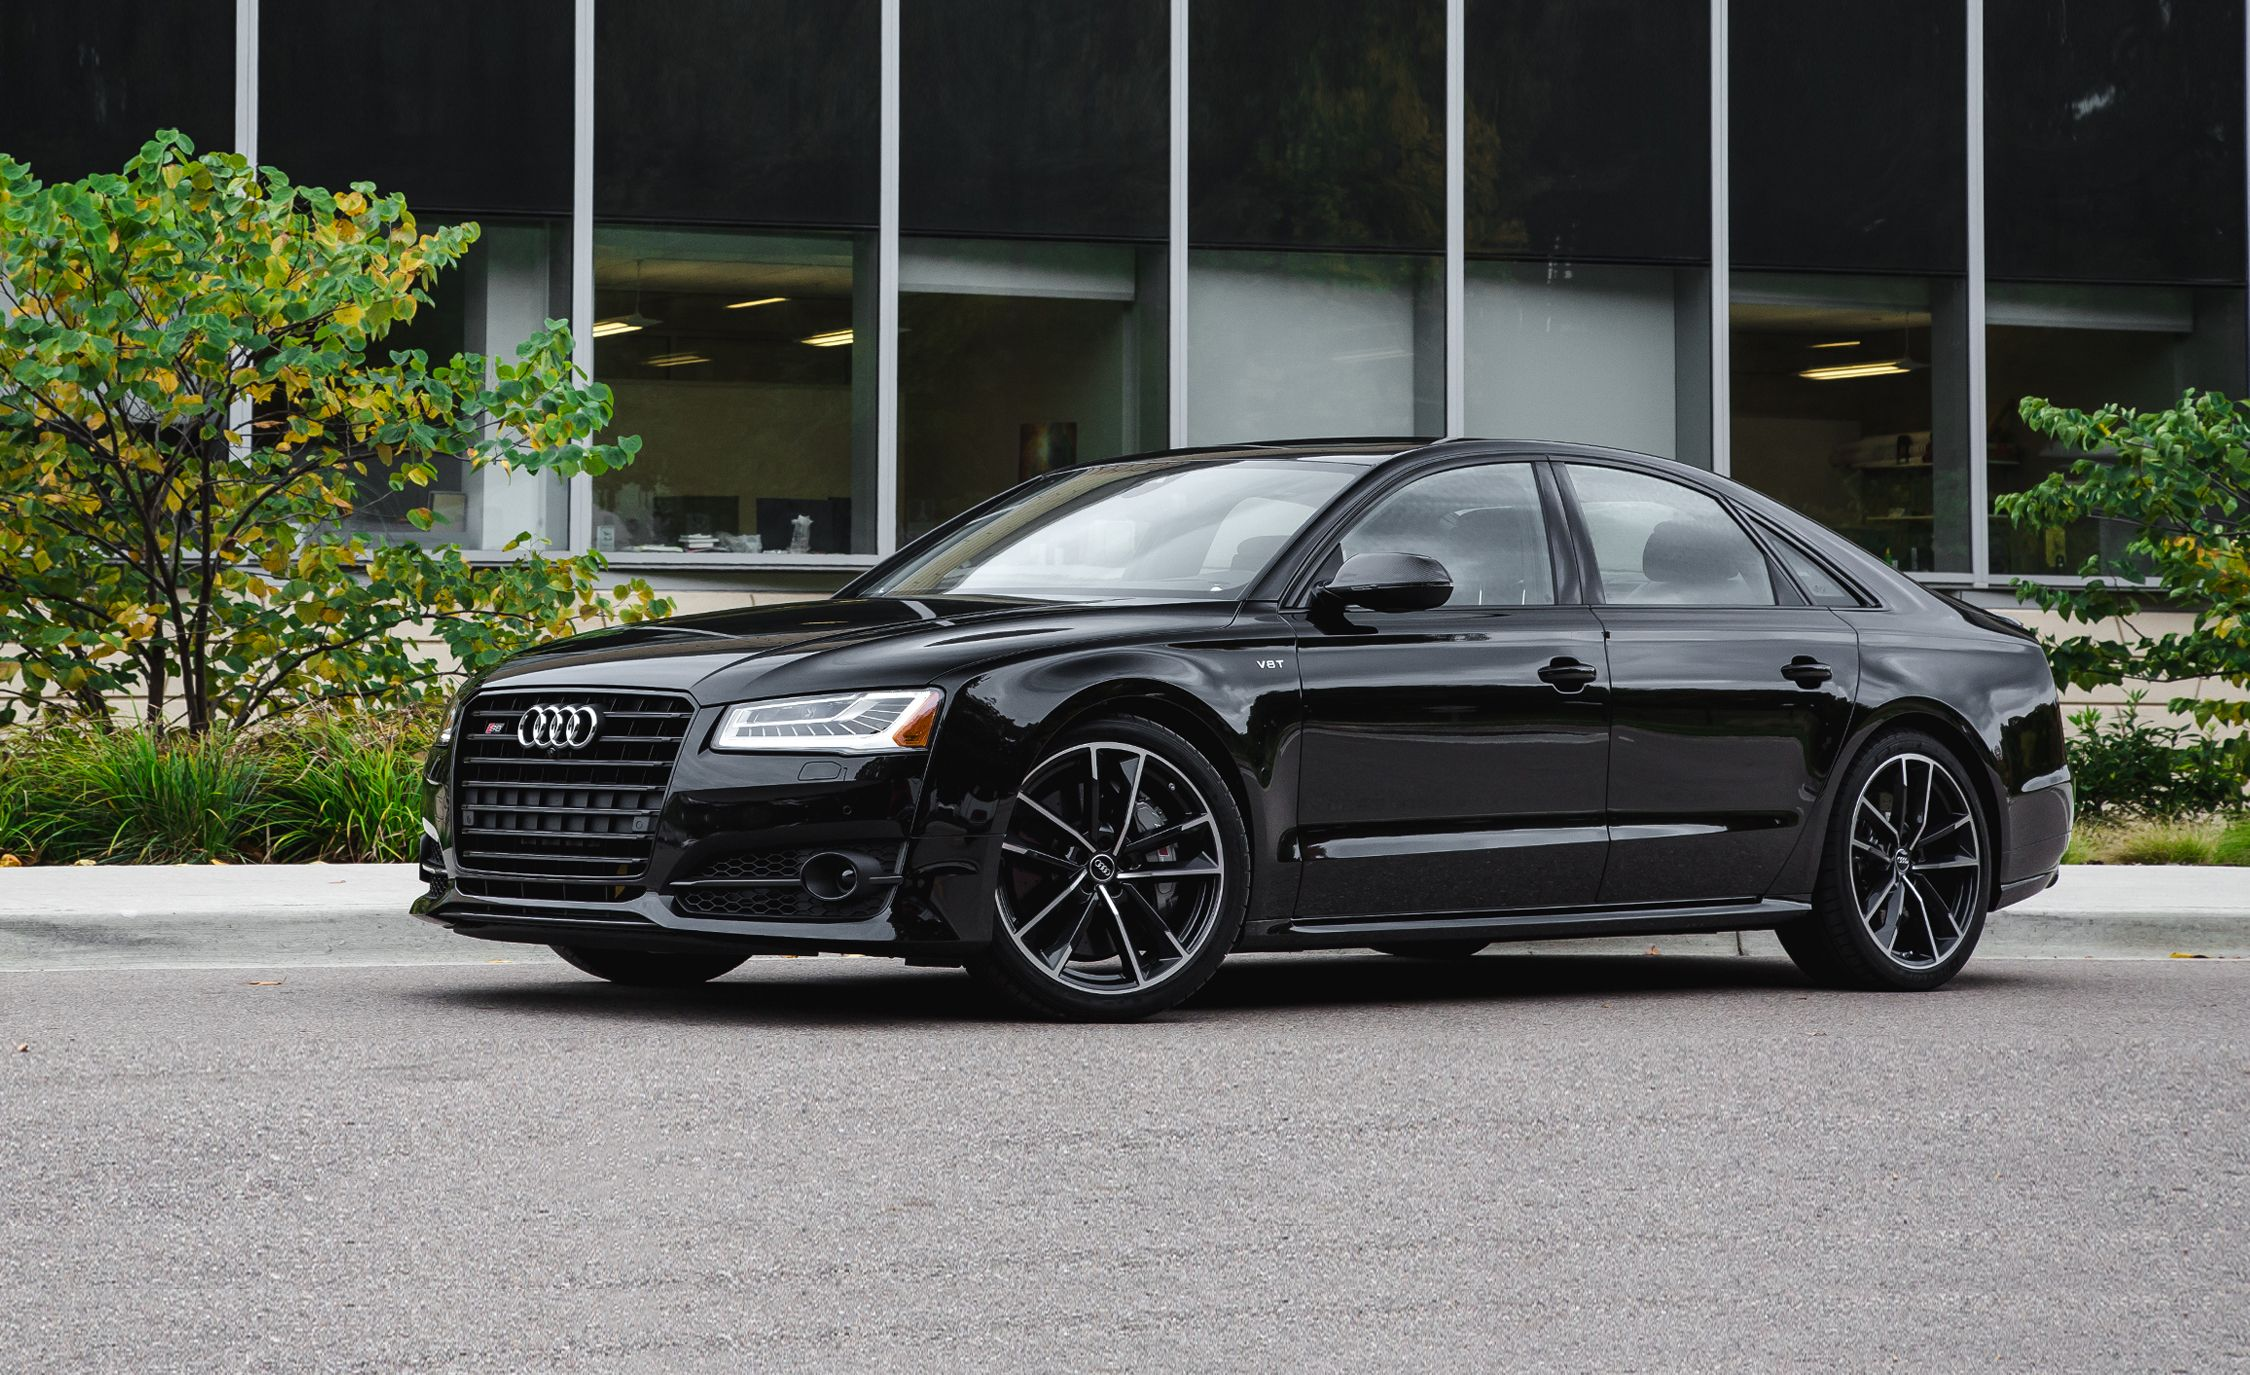 2017 Audi S8 Pictures | Photo Gallery | Car and Driver